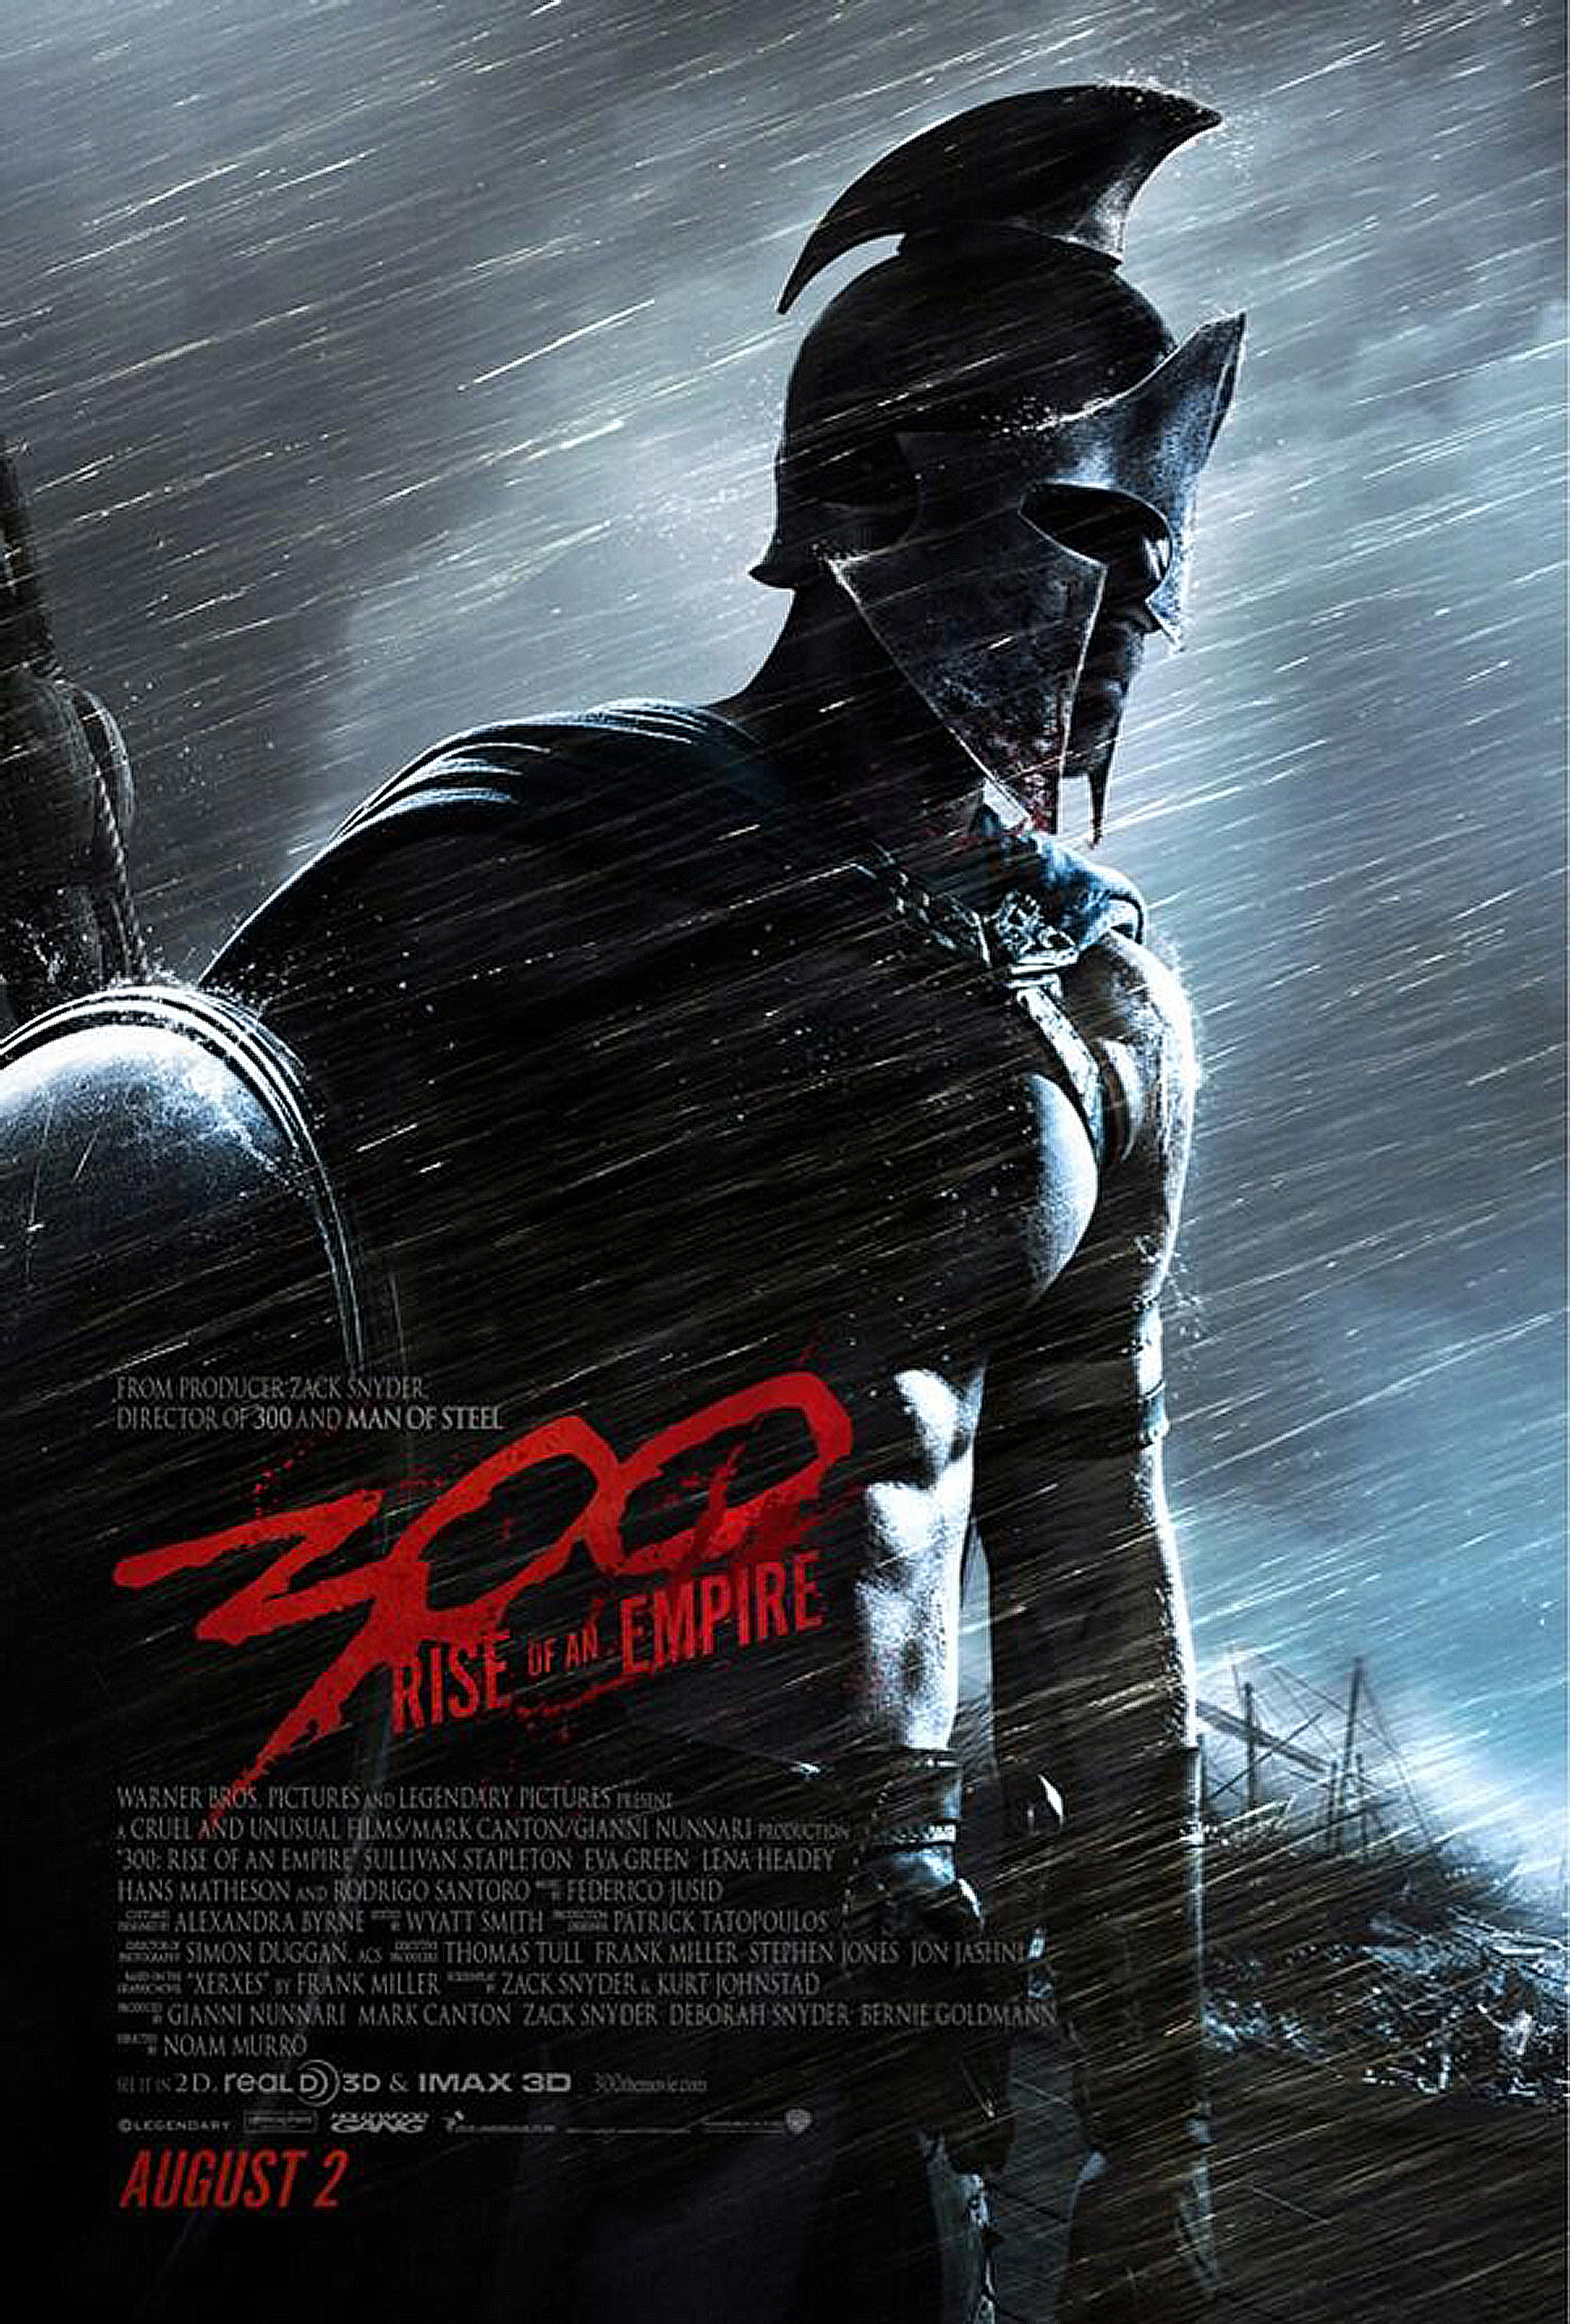 300-Rise-of-an-Empire-300-Sequel-Poster-300-34264453-1800-2664